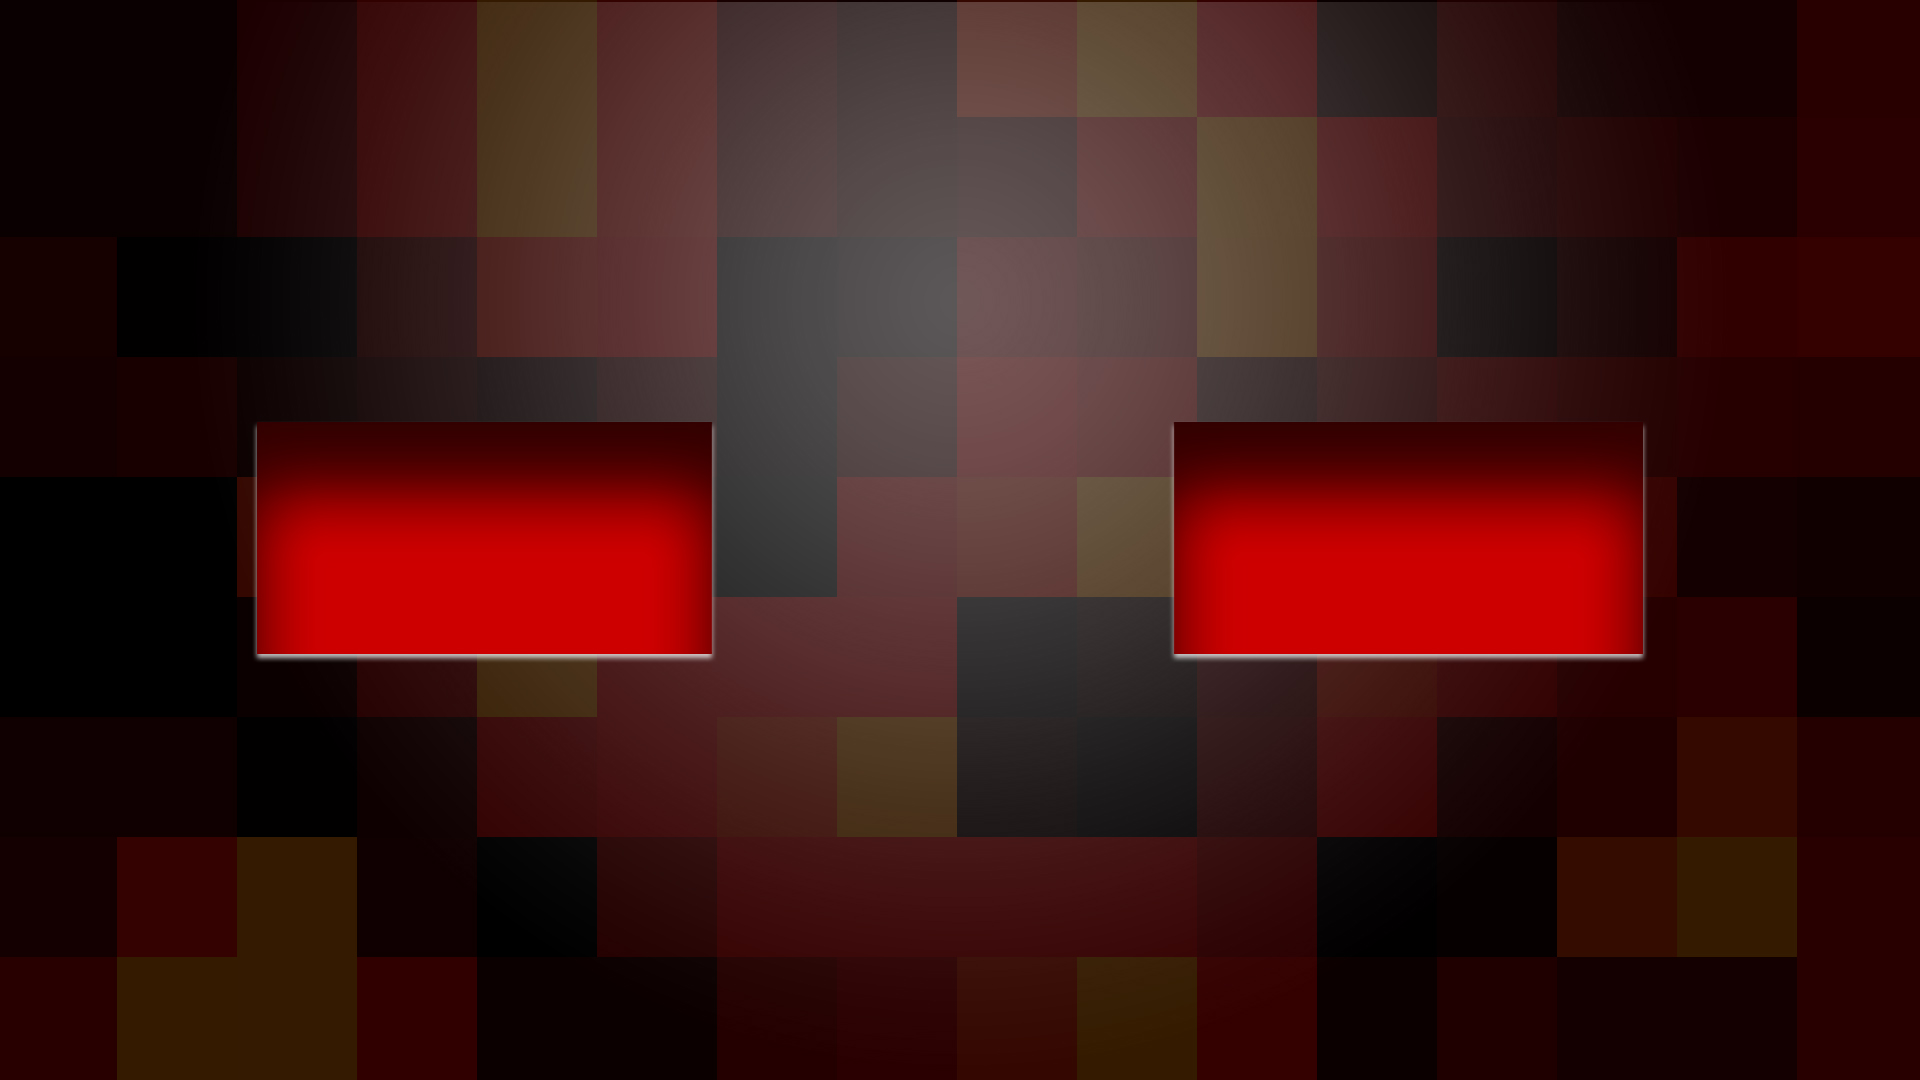 Magma Cube wallpaper by averagejoeftw on DeviantArt